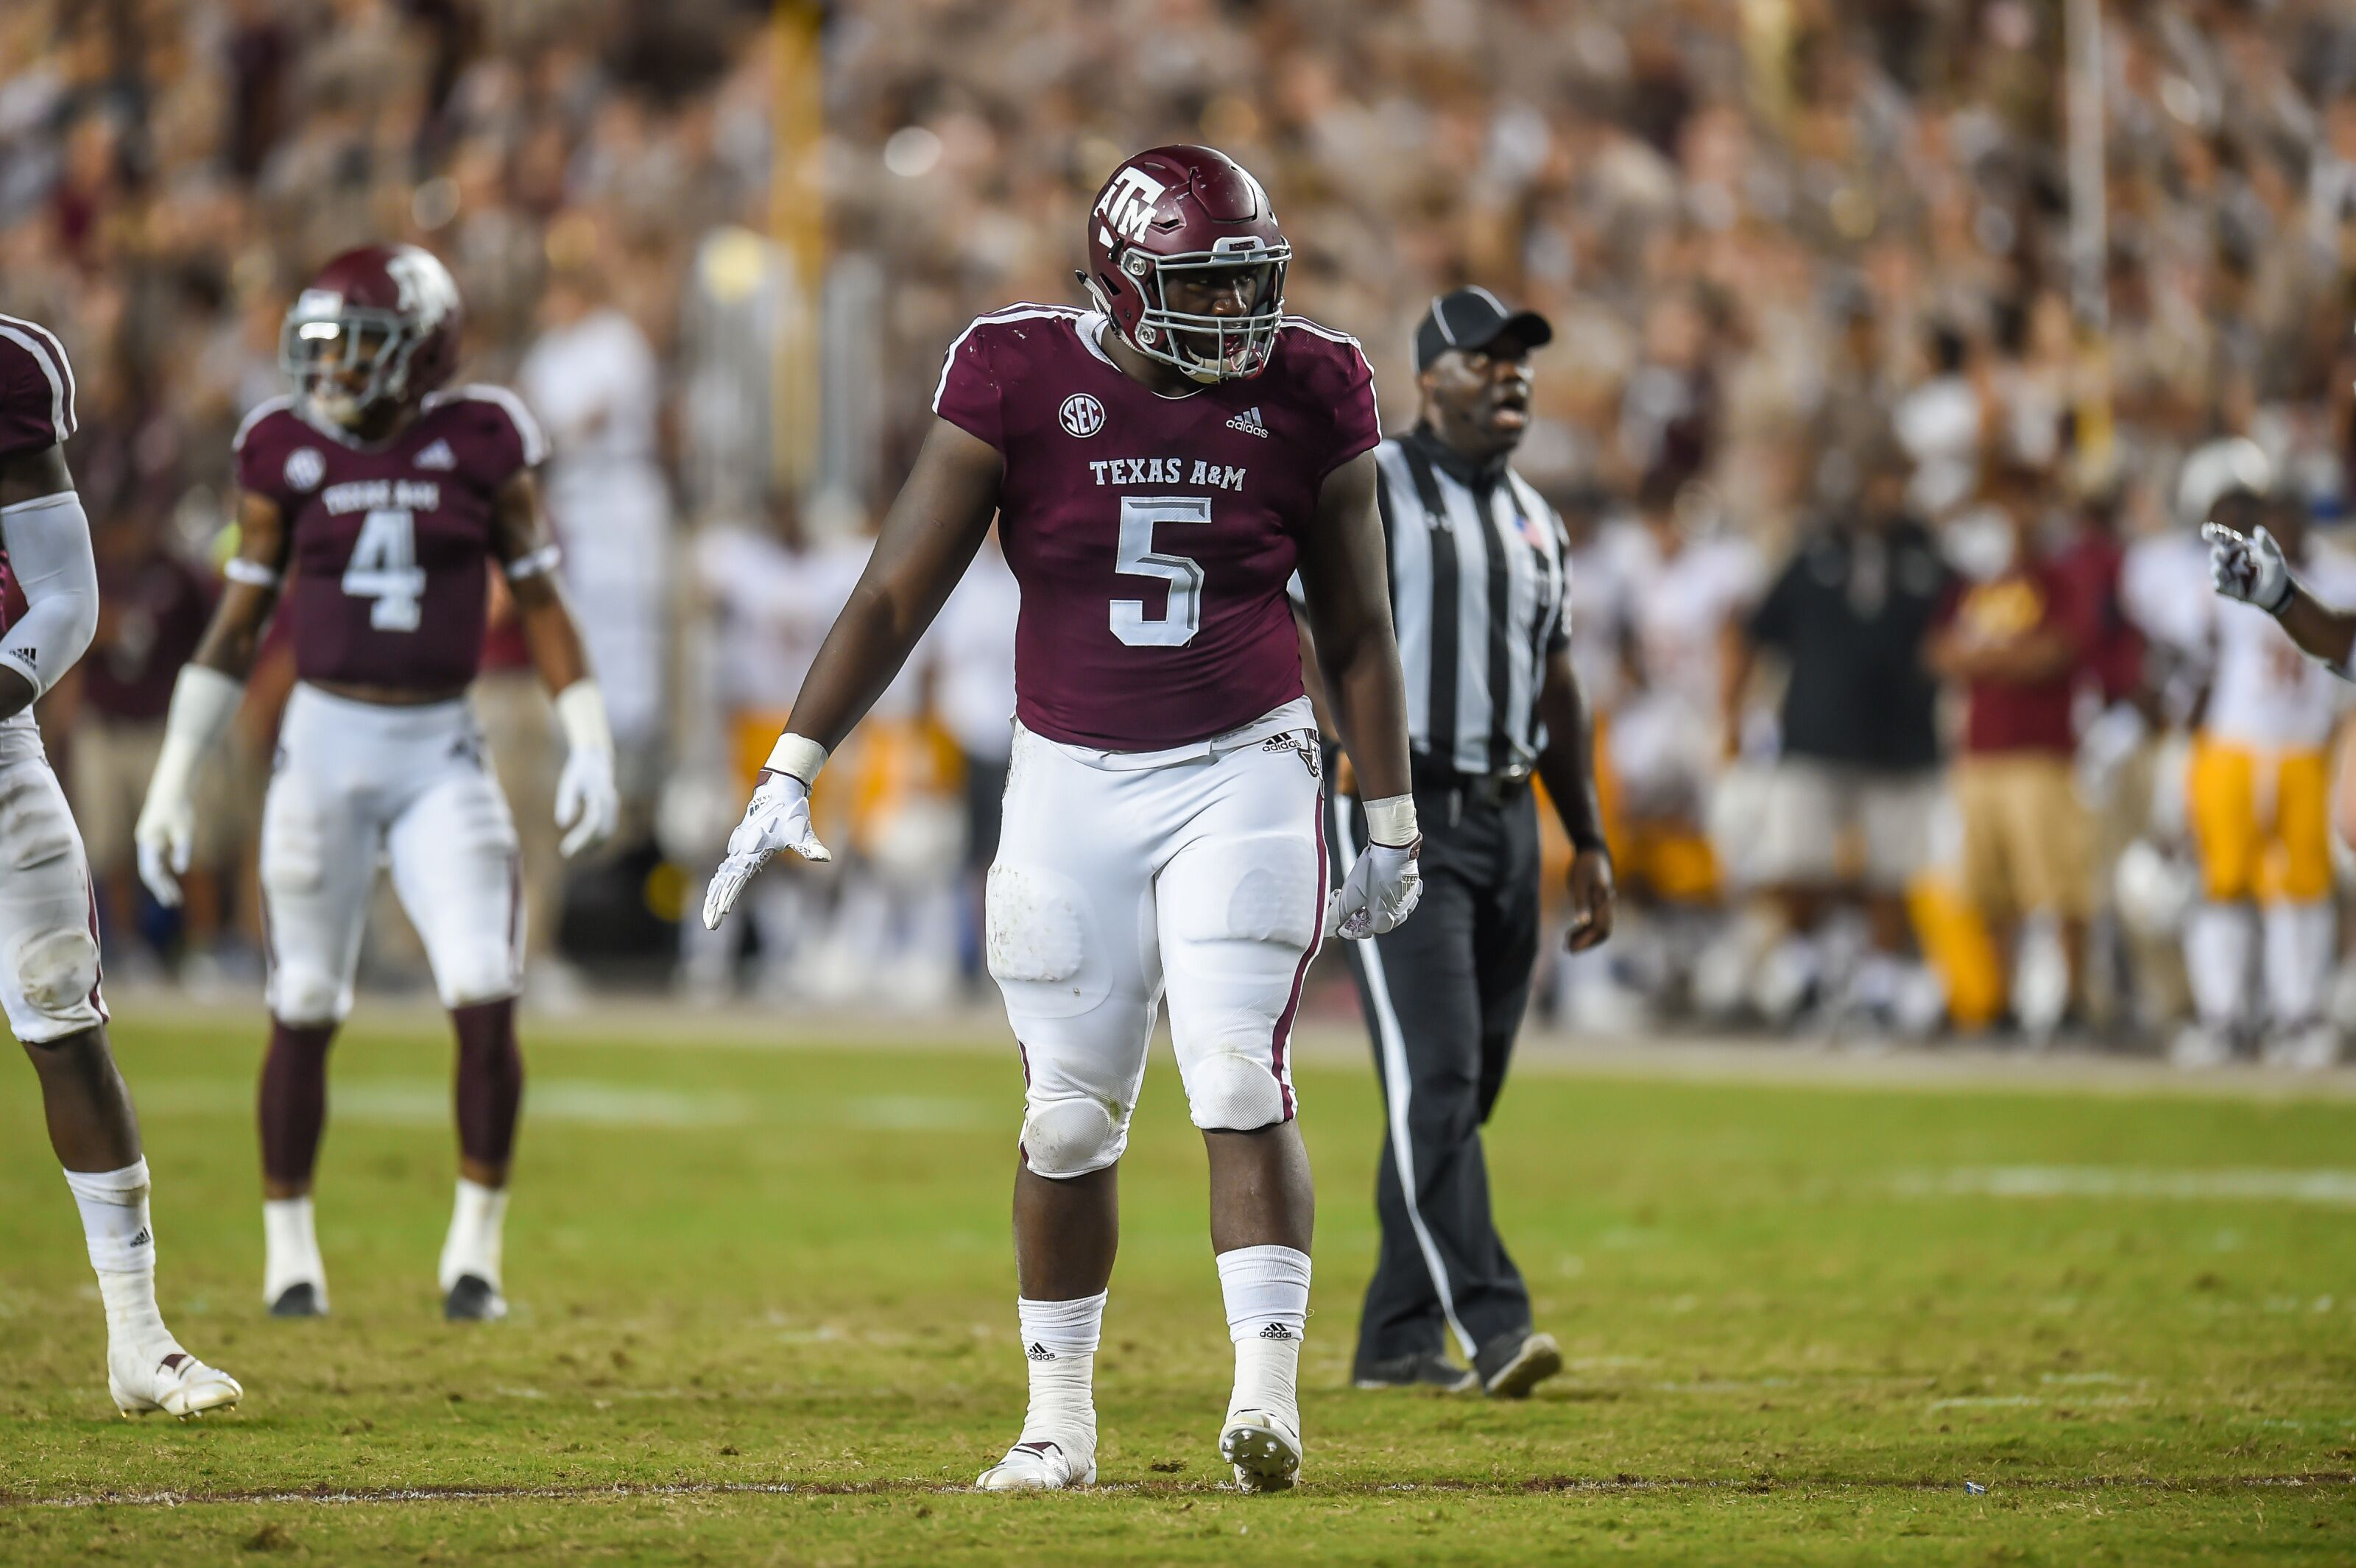 Texas A&M football: Bobby Brown making a position switch?